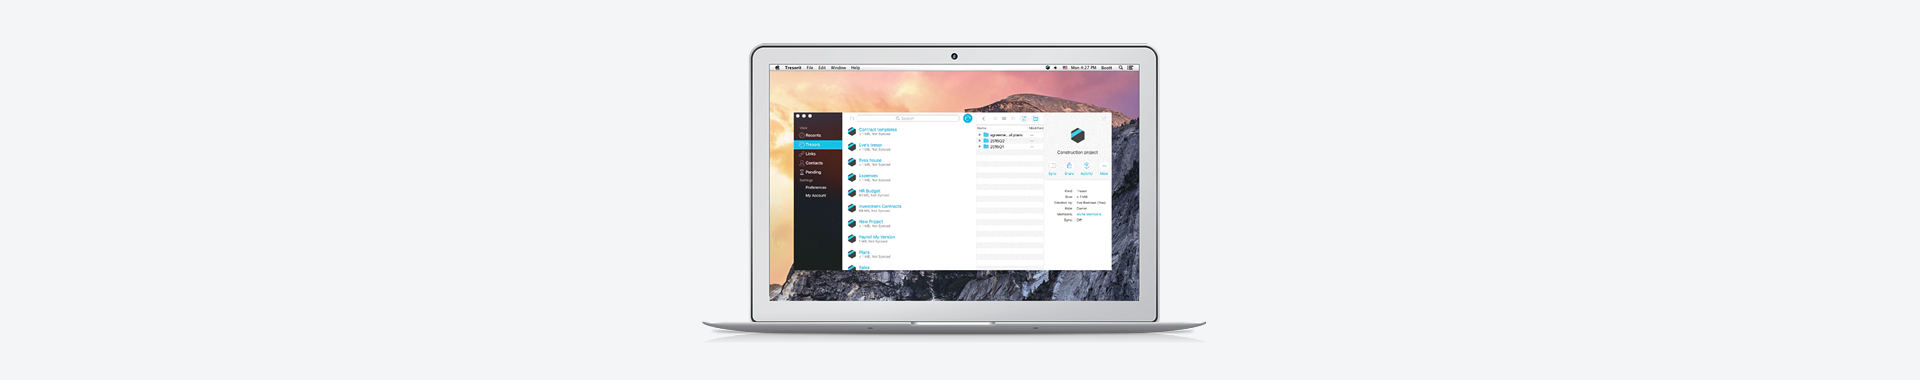 Here comes Tresorit 3.0, an easier way to securely sync and share files